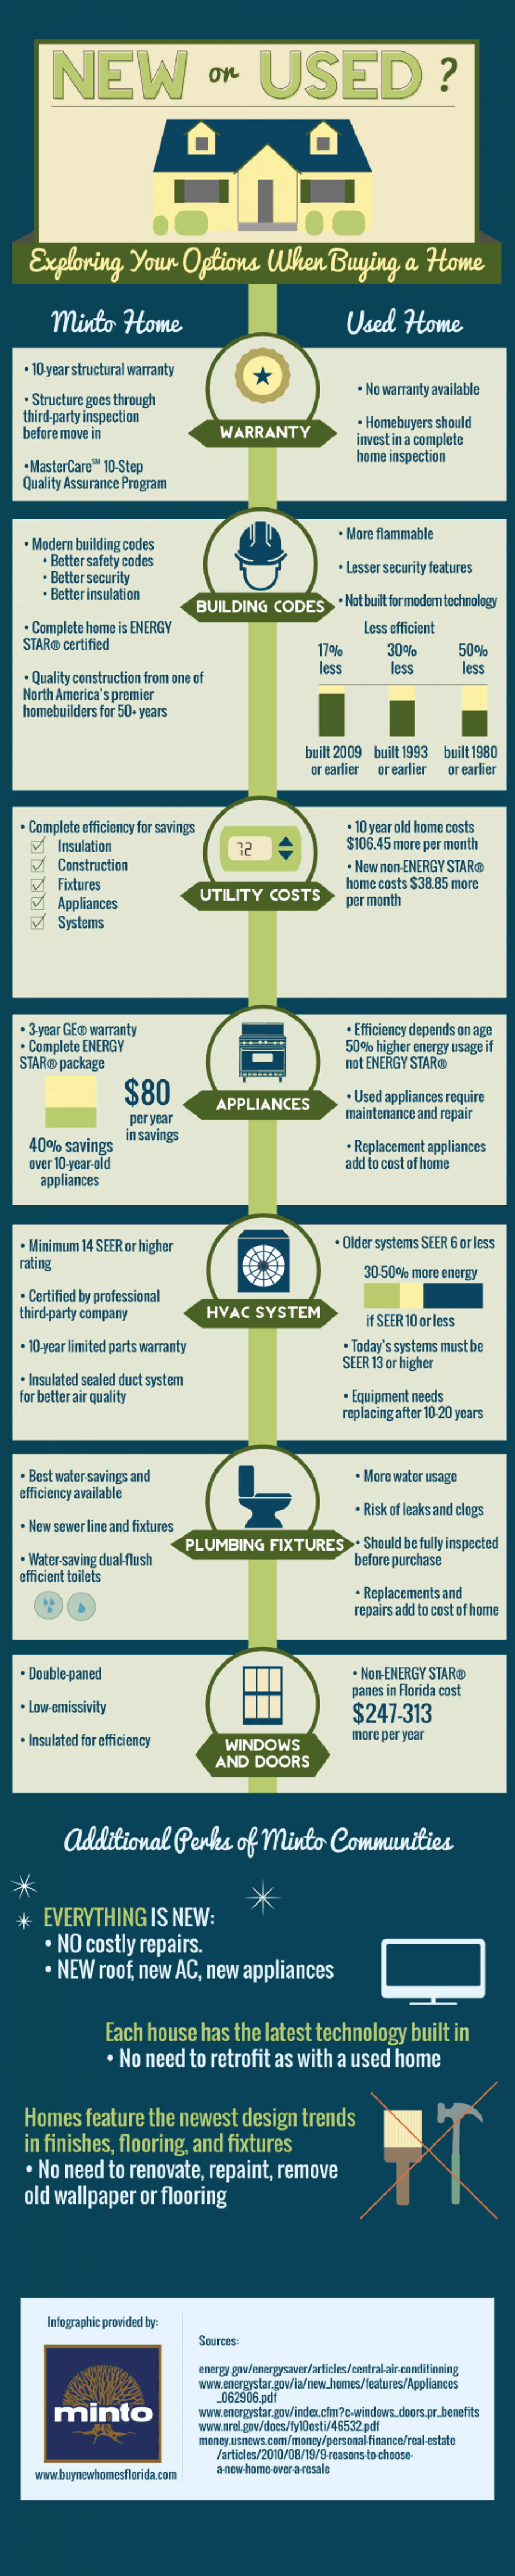 New or Used? Exploring Your Options When Buying a Home Infographic